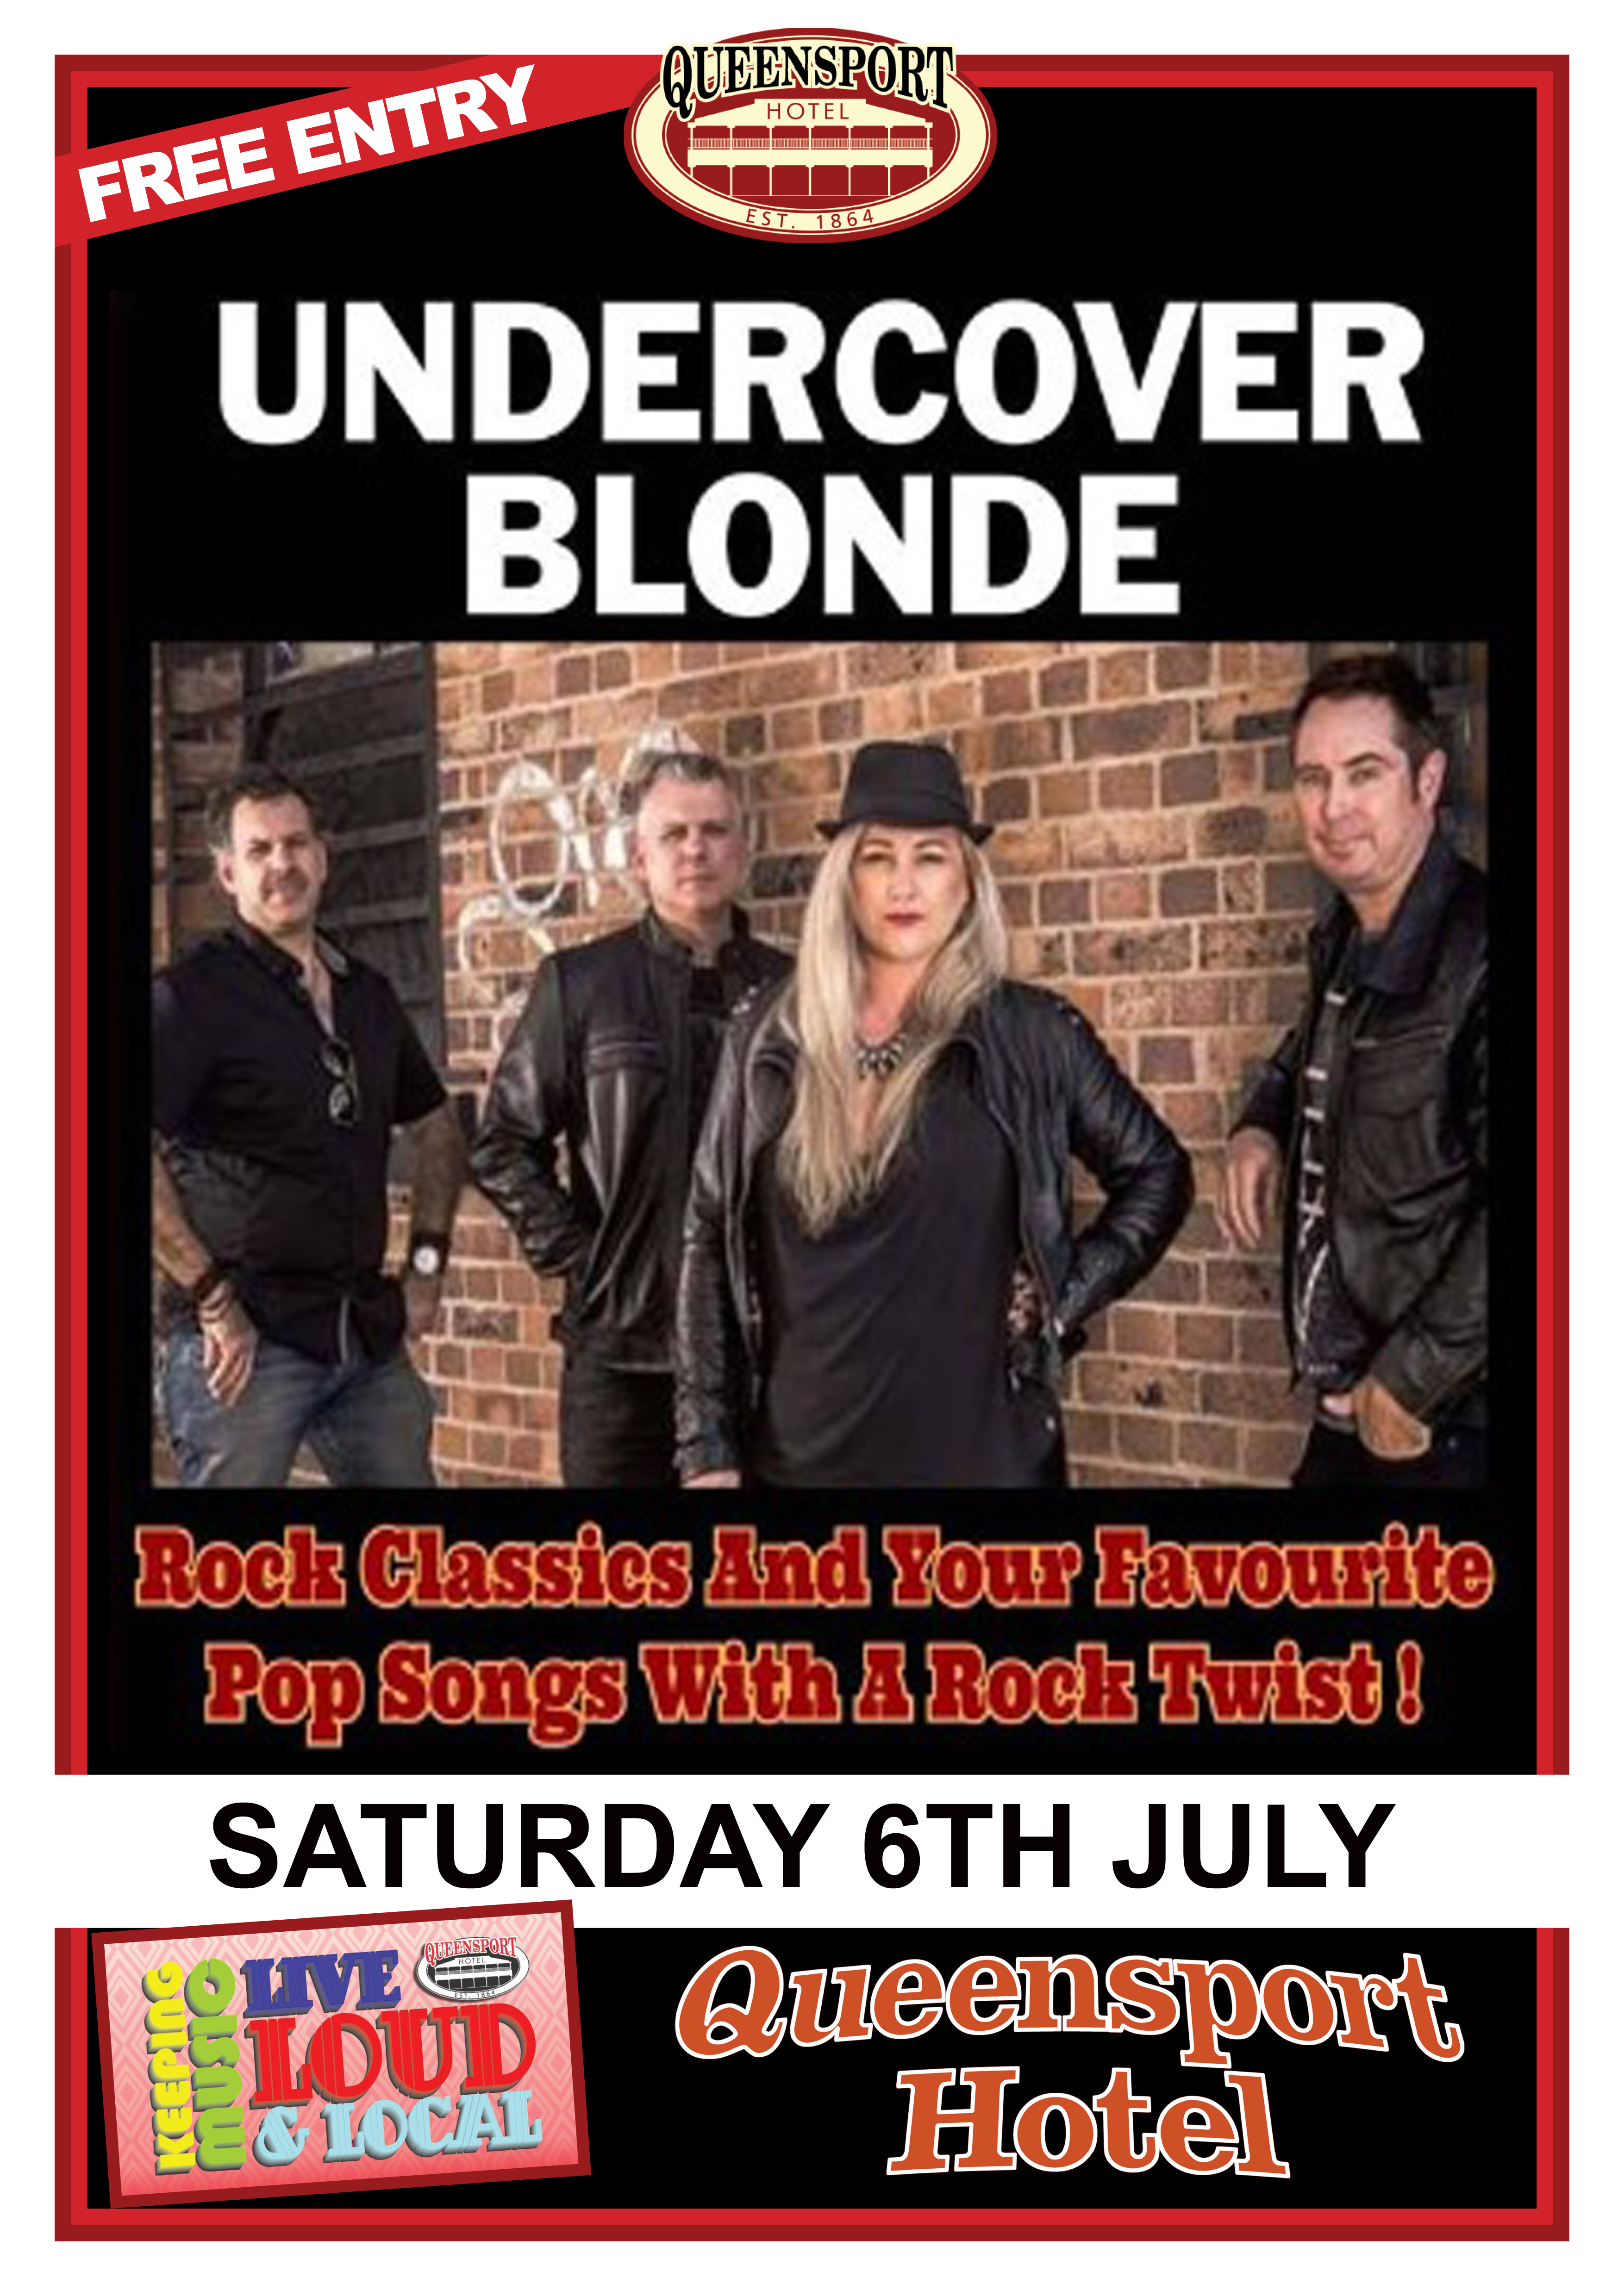 Undercover Blonde A3 6-7